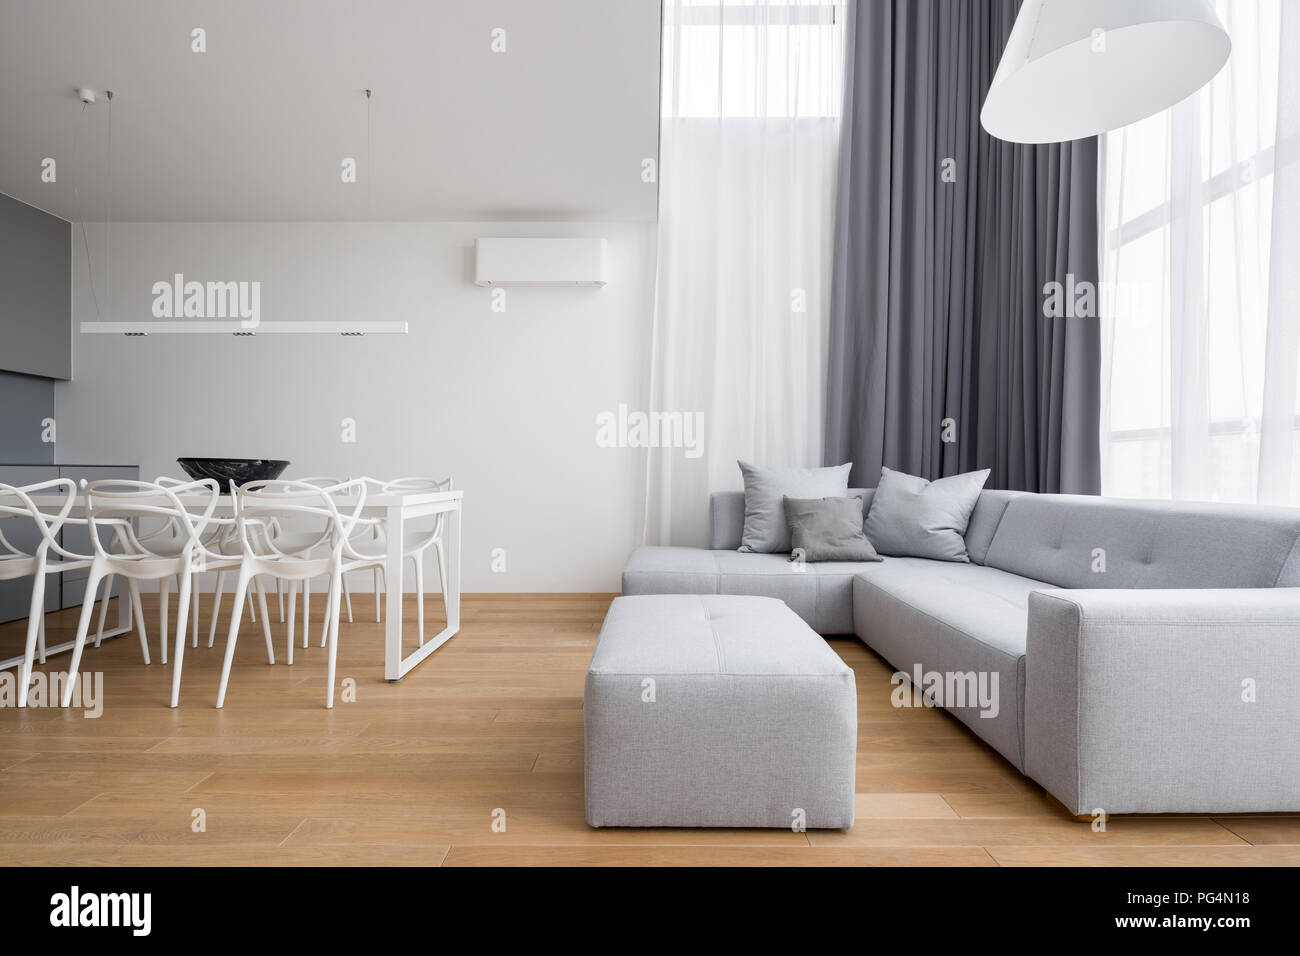 Ecksofa Minimalistisch Grey Room Sofa Stockfotos Grey Room Sofa Bilder Seite 15 Alamy